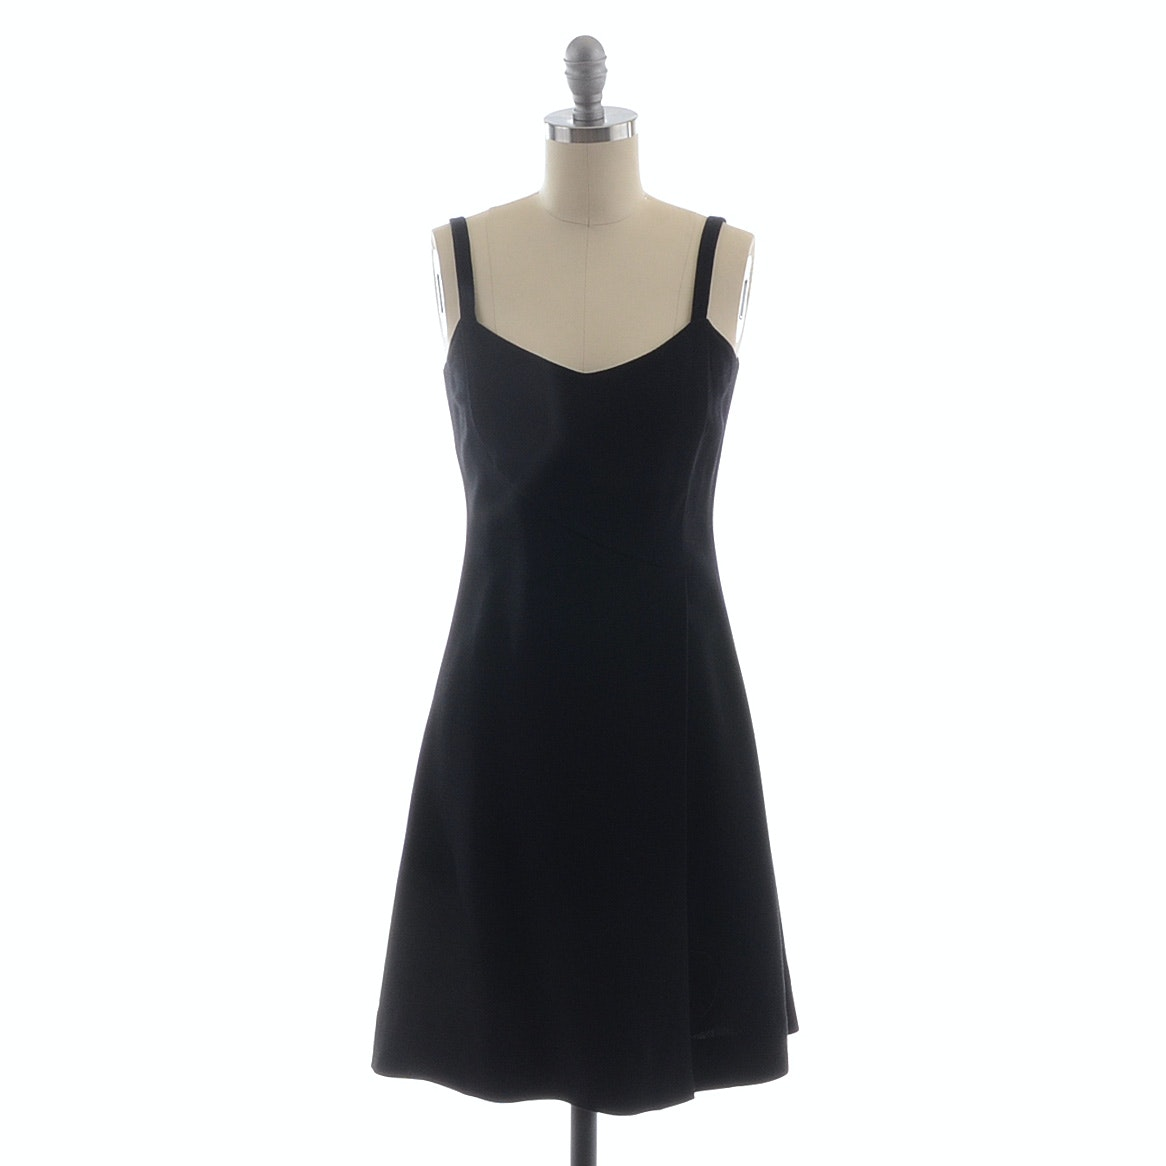 Circa 1980s Emporio Armani Black Sleeveless Cocktail Dress